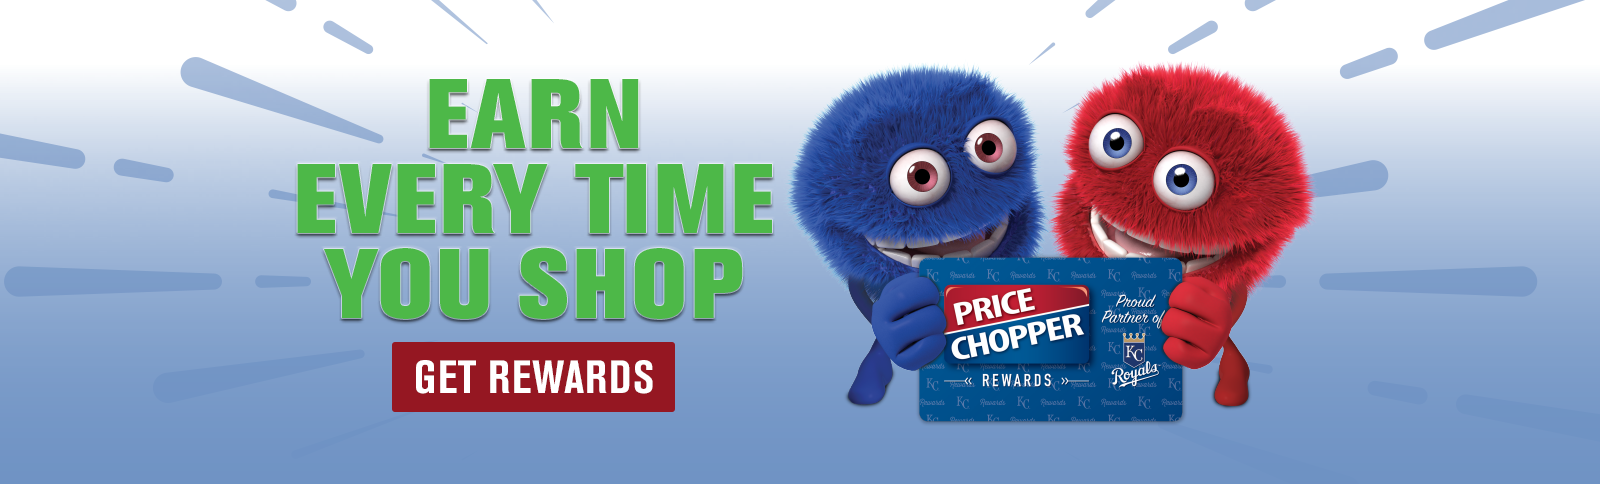 Blue and Red Chomper holding a Price Chopper REWARDS card. Find out how to earn and redeem REWARDS.